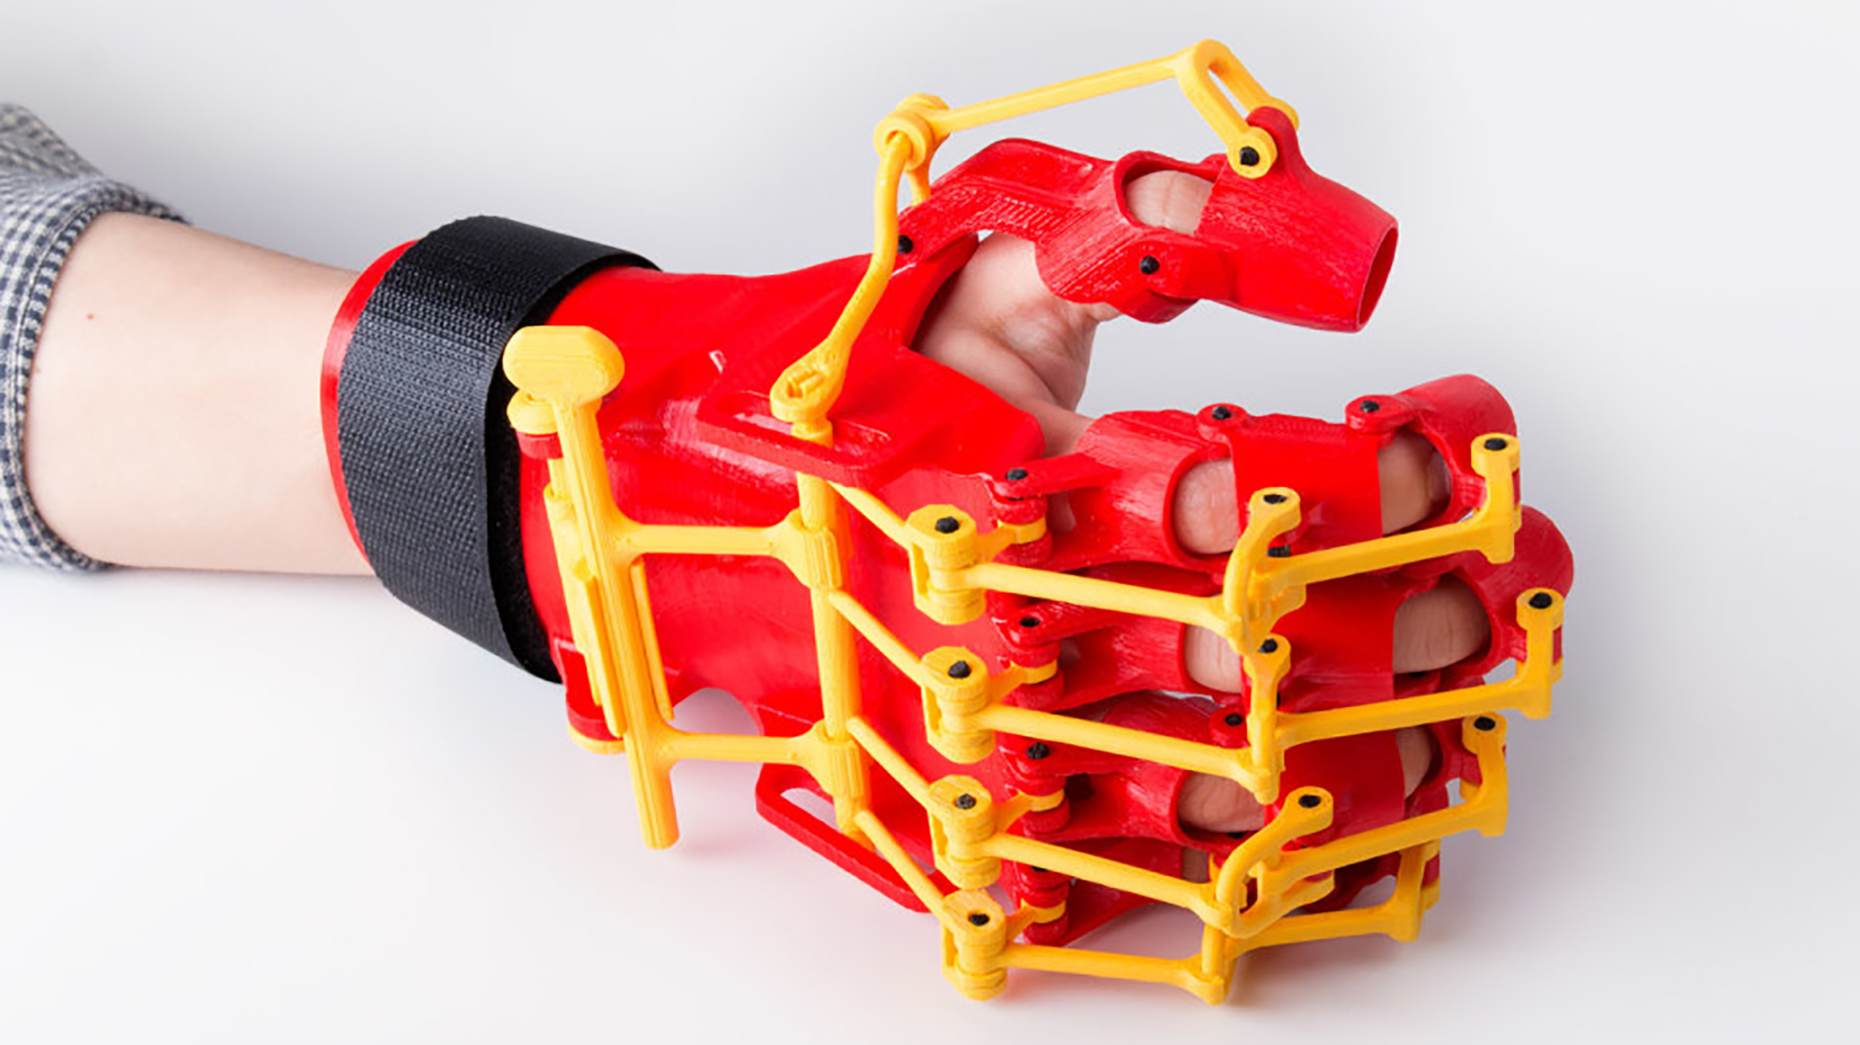 3D-printed Orthosis Helps Patients Suffering From Mild Paresis 3